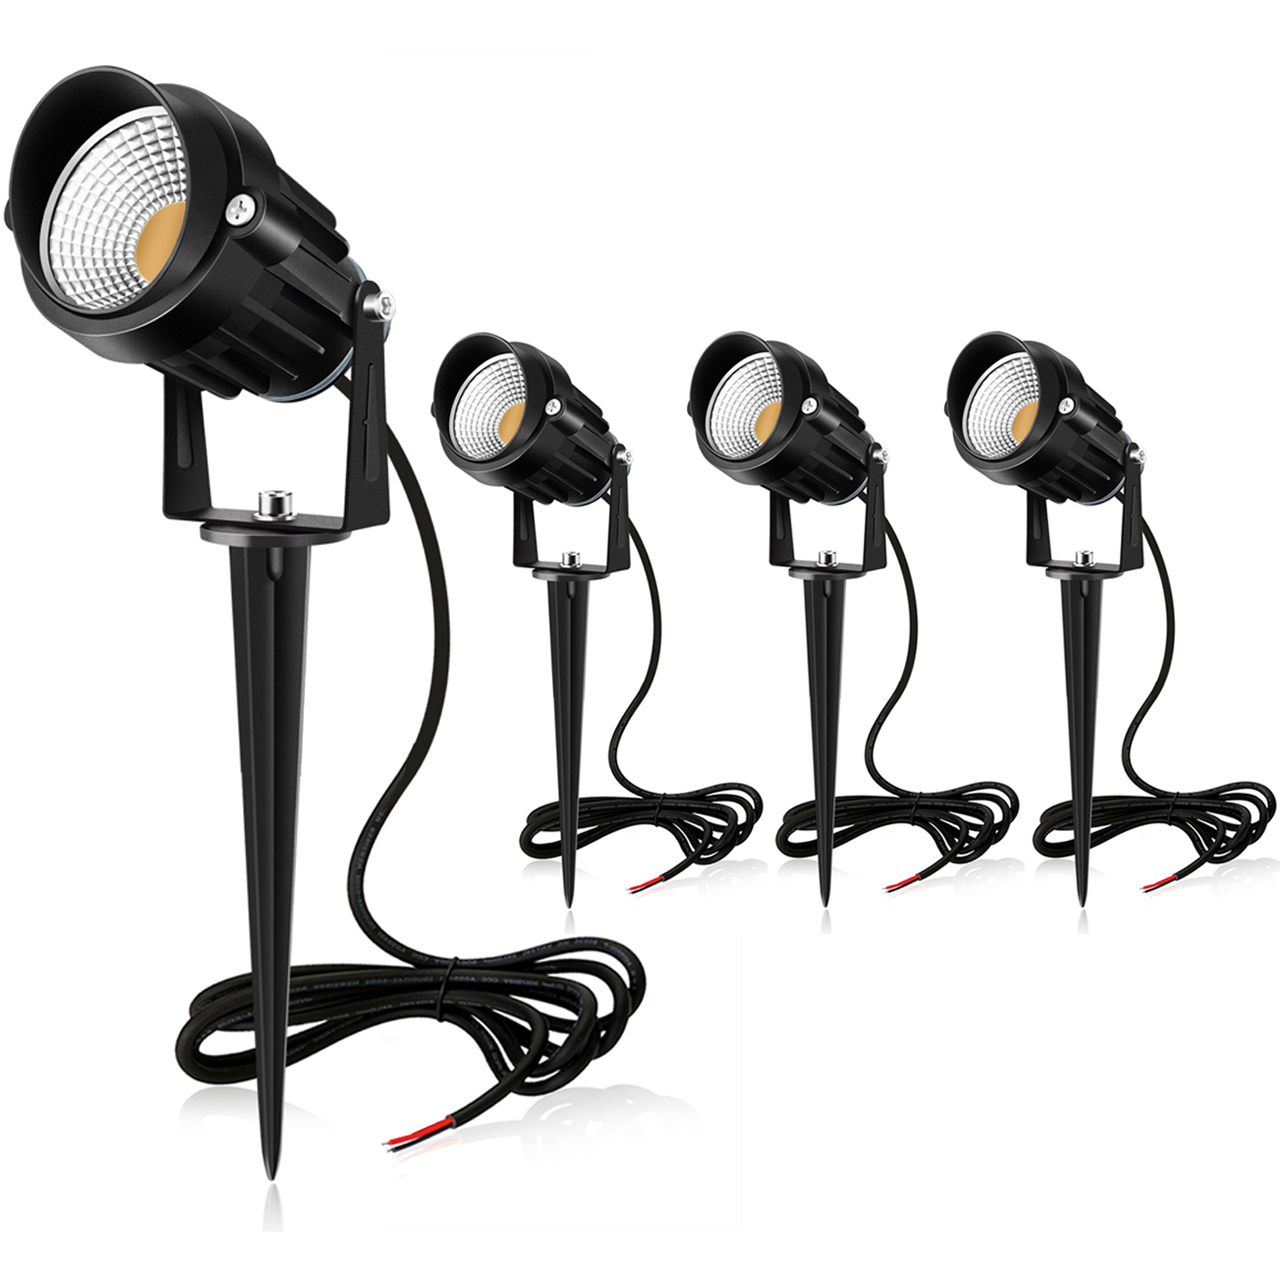 MEIKEE 7W LED Landscape Lights Pathway Lights 12V/24V Spotlights Warm White IP66 Waterproof for Driveway, Yard, Lawn, Patio, Swimming Pool,Outdoor Garden Lights (4 Pack)